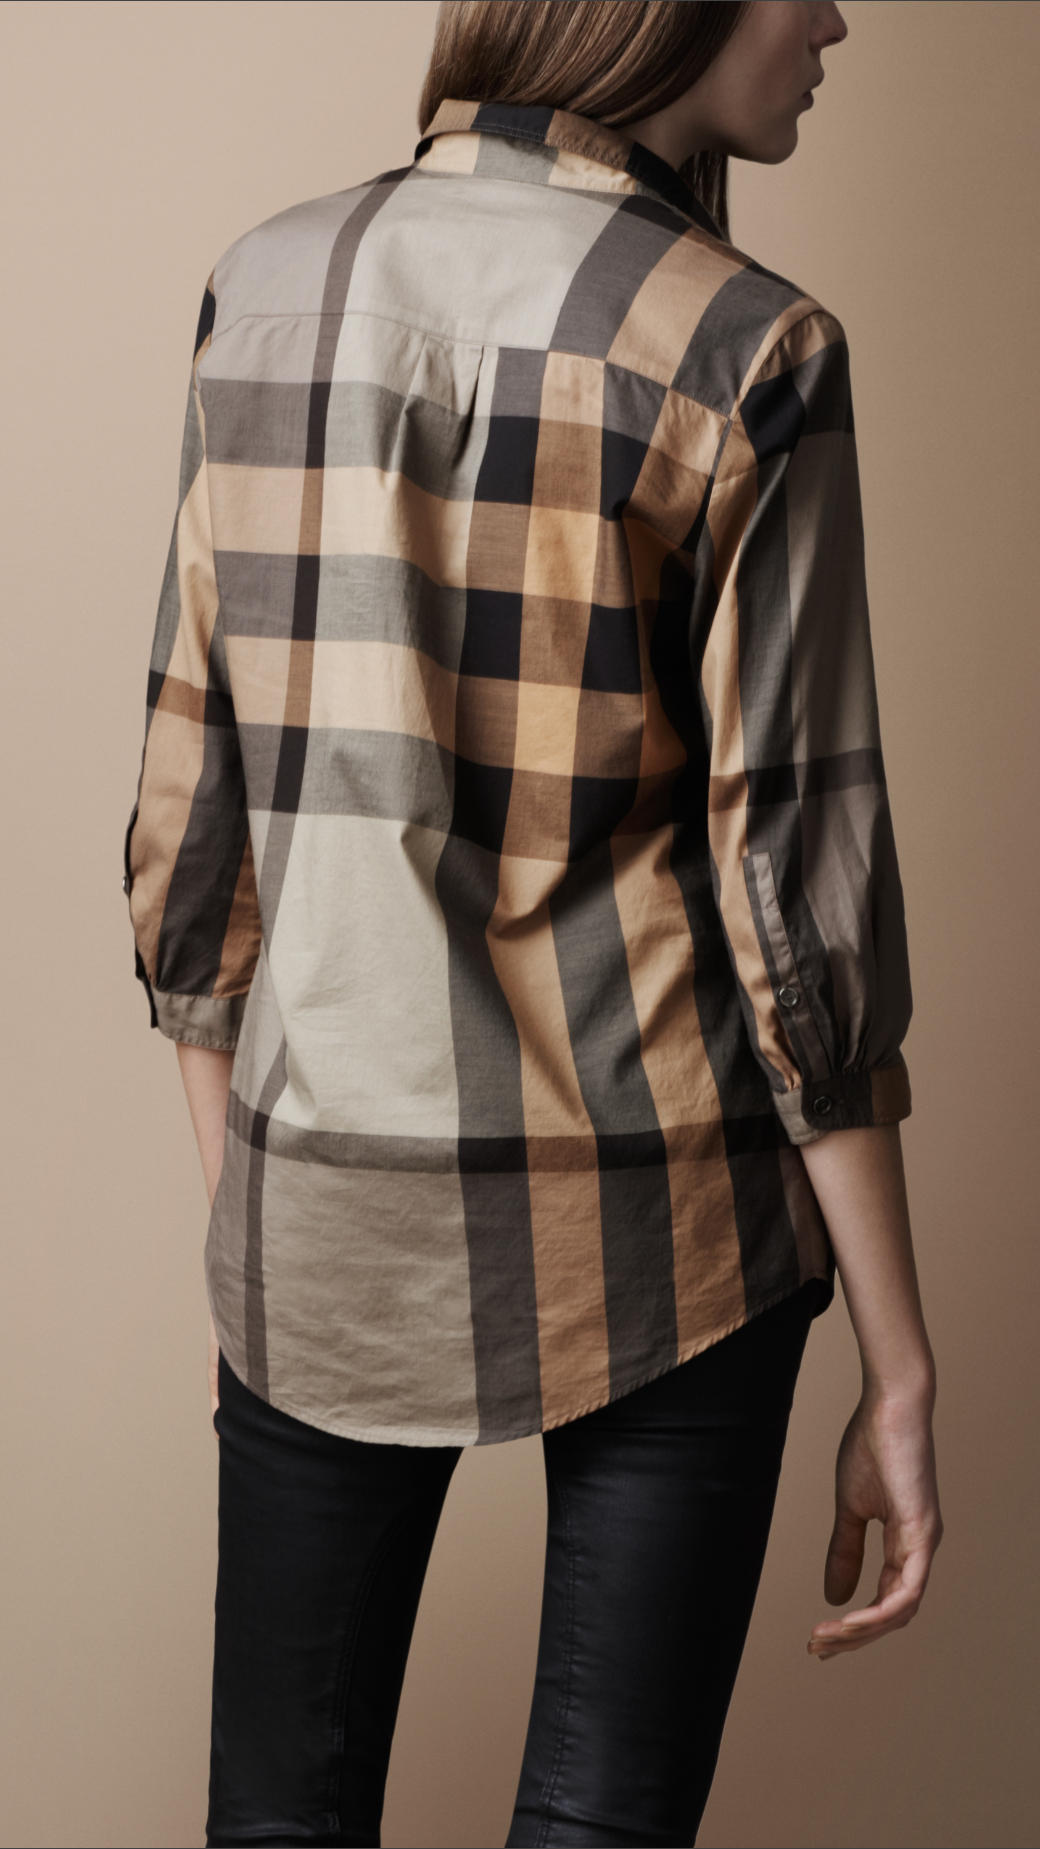 e88006bc701 Burberry Brit Check Tunic Shirt in Natural - Lyst